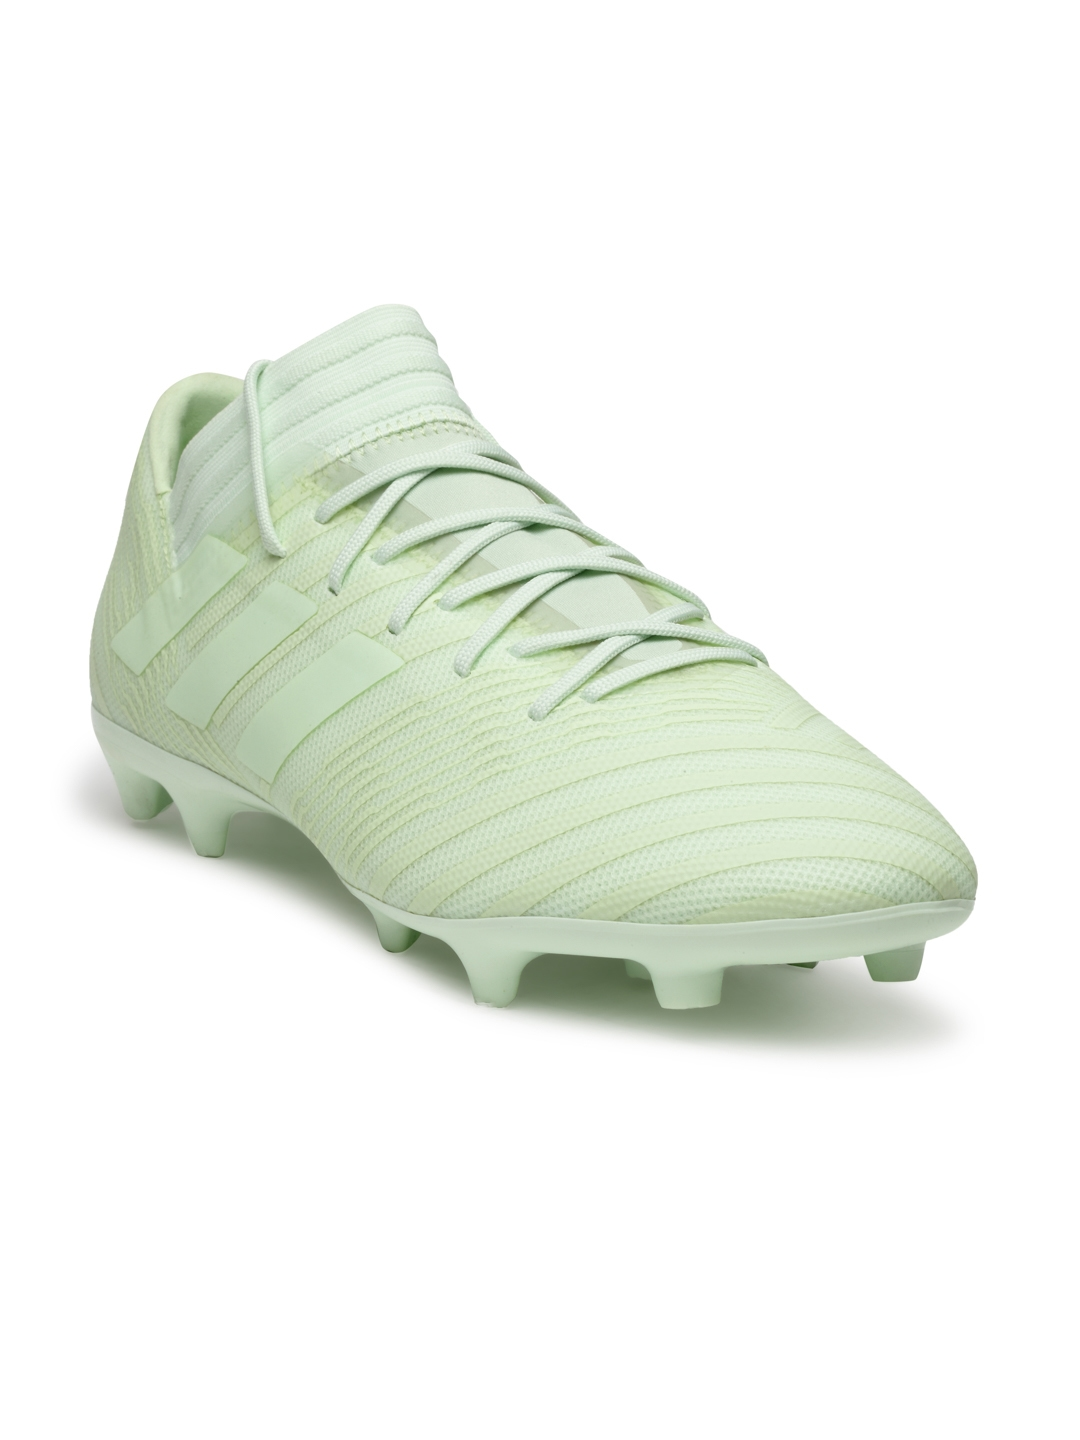 43025e0c5 Buy ADIDAS Men Mint Green NEMEZIZ 17.3 Firm Ground Football Shoes ...